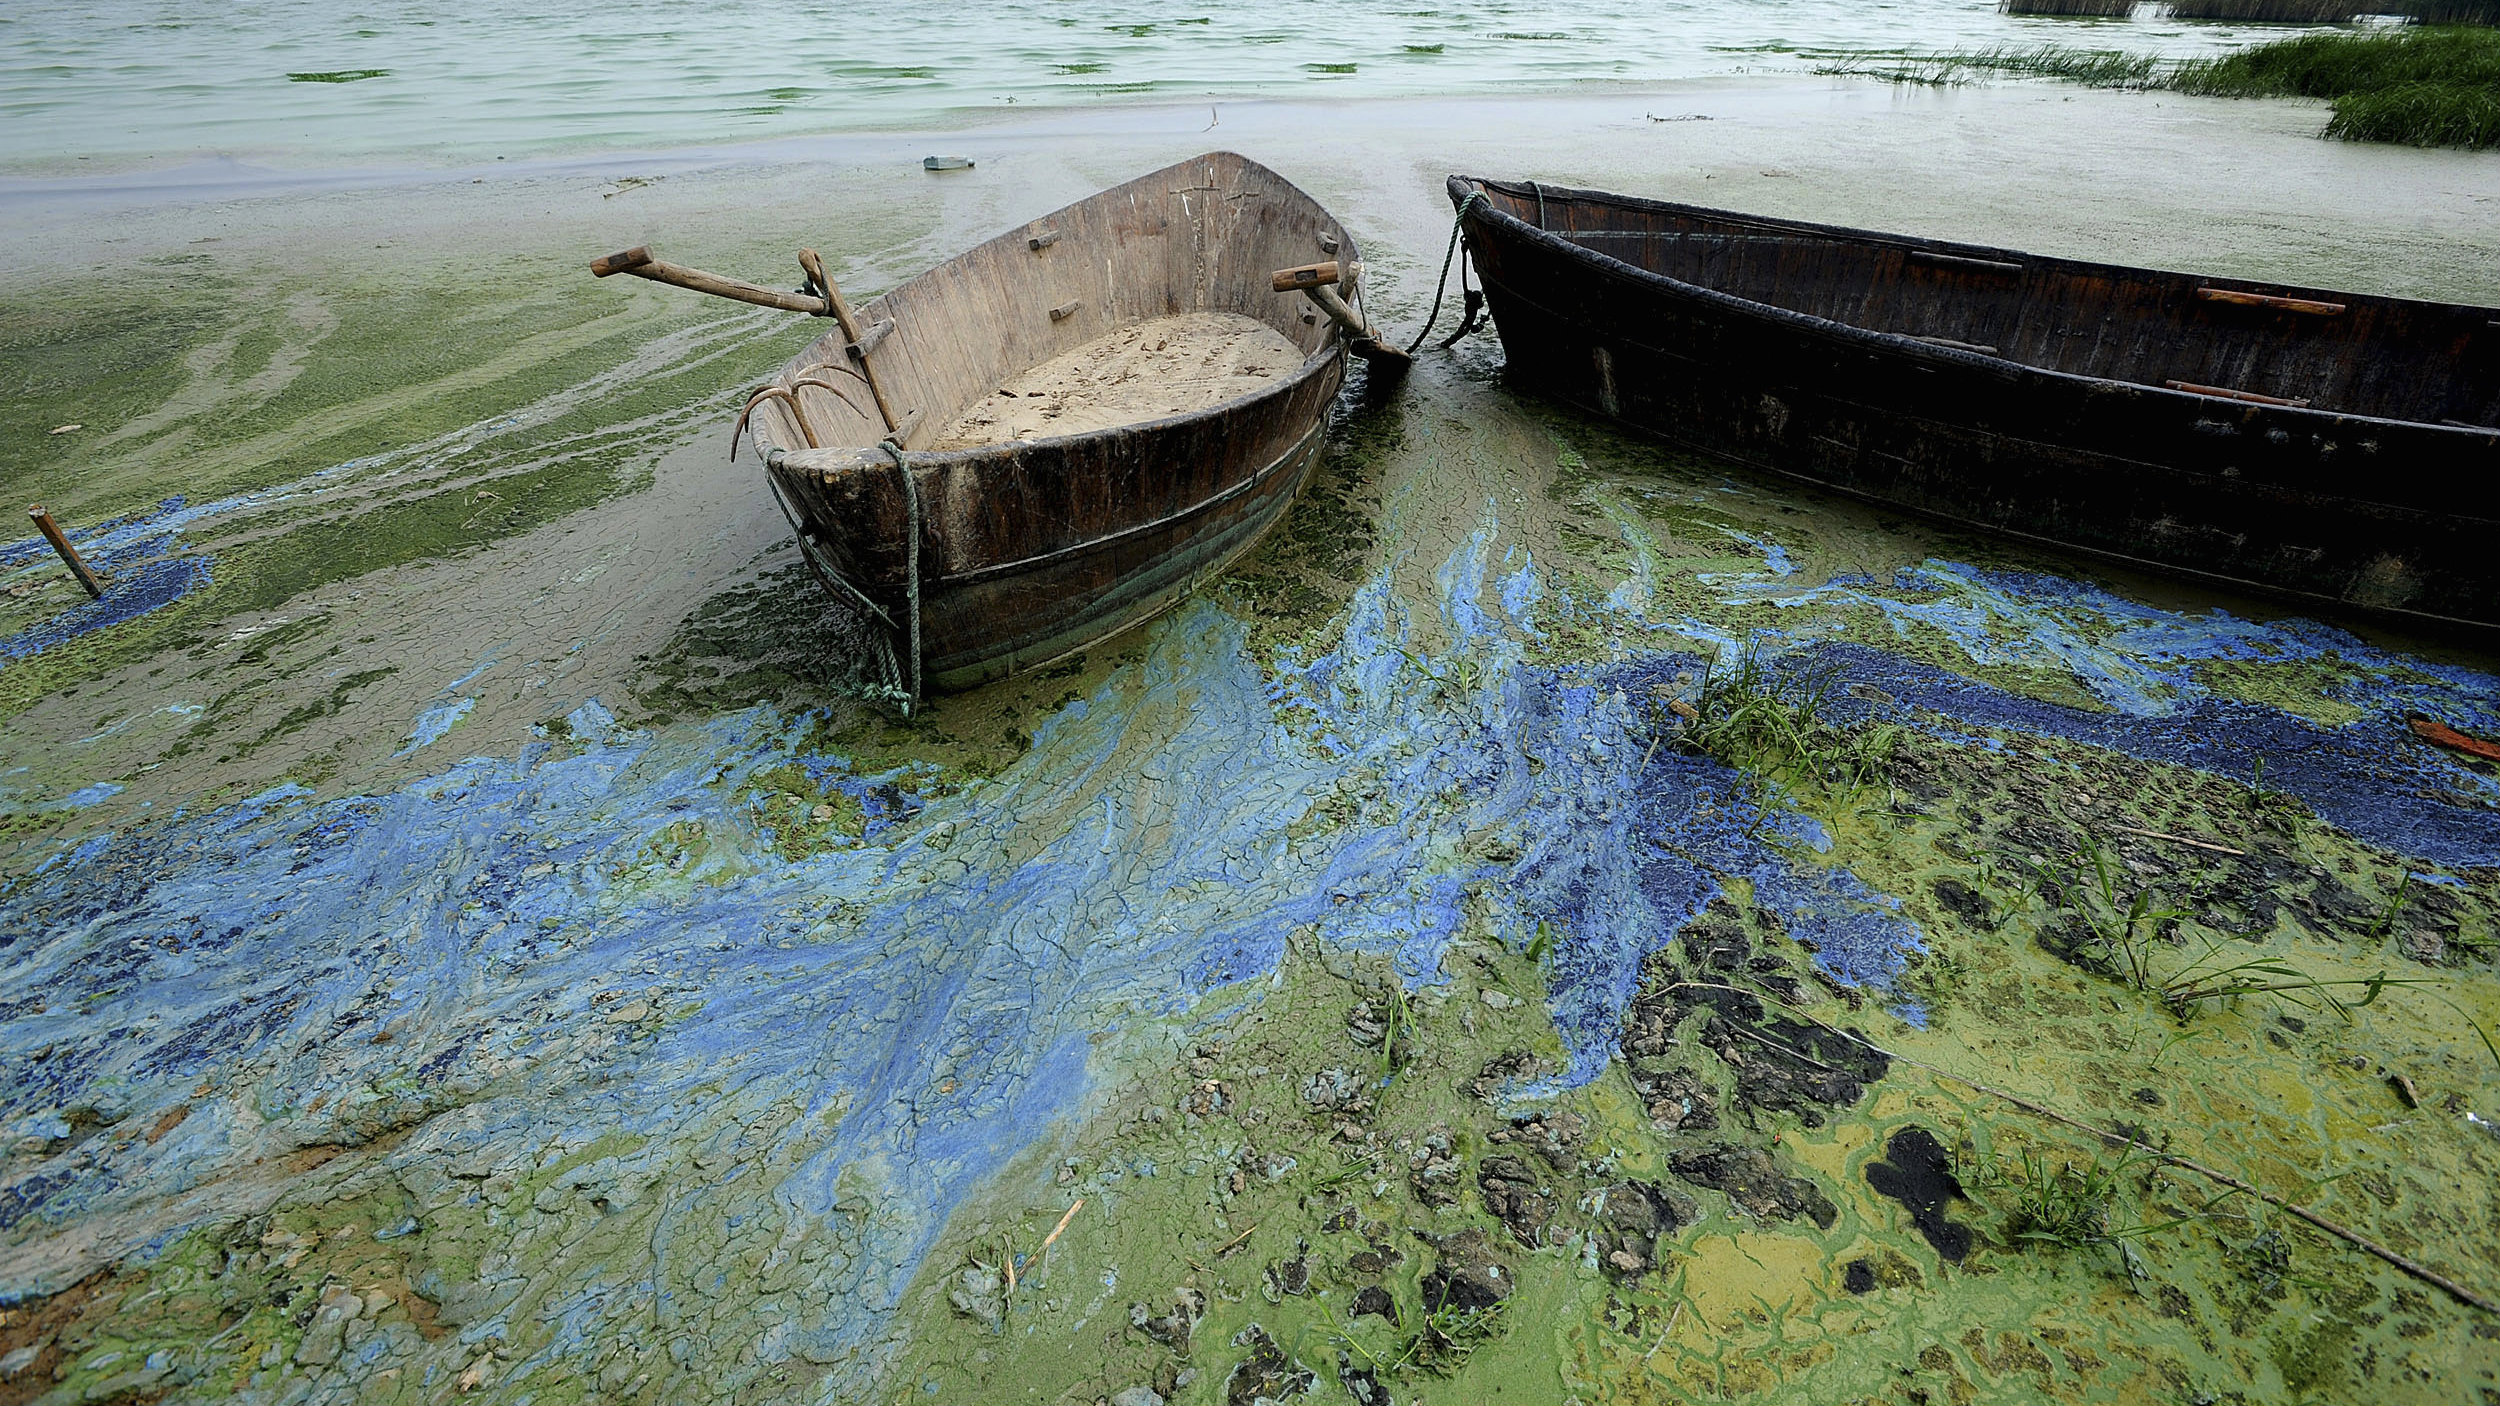 Boats sit on the bank of the algae-filled Chaolu lake in Hefei, Anhui province June 3, 2008. Chaohu, the country's fifth largest body of freshwater, was hit by a blue-green algae outbreak last summer, which endangered water supply in nearby cities and posed a great threat to aquatic life, Xinhua News Agency said. Picture taken June 3, 2008.